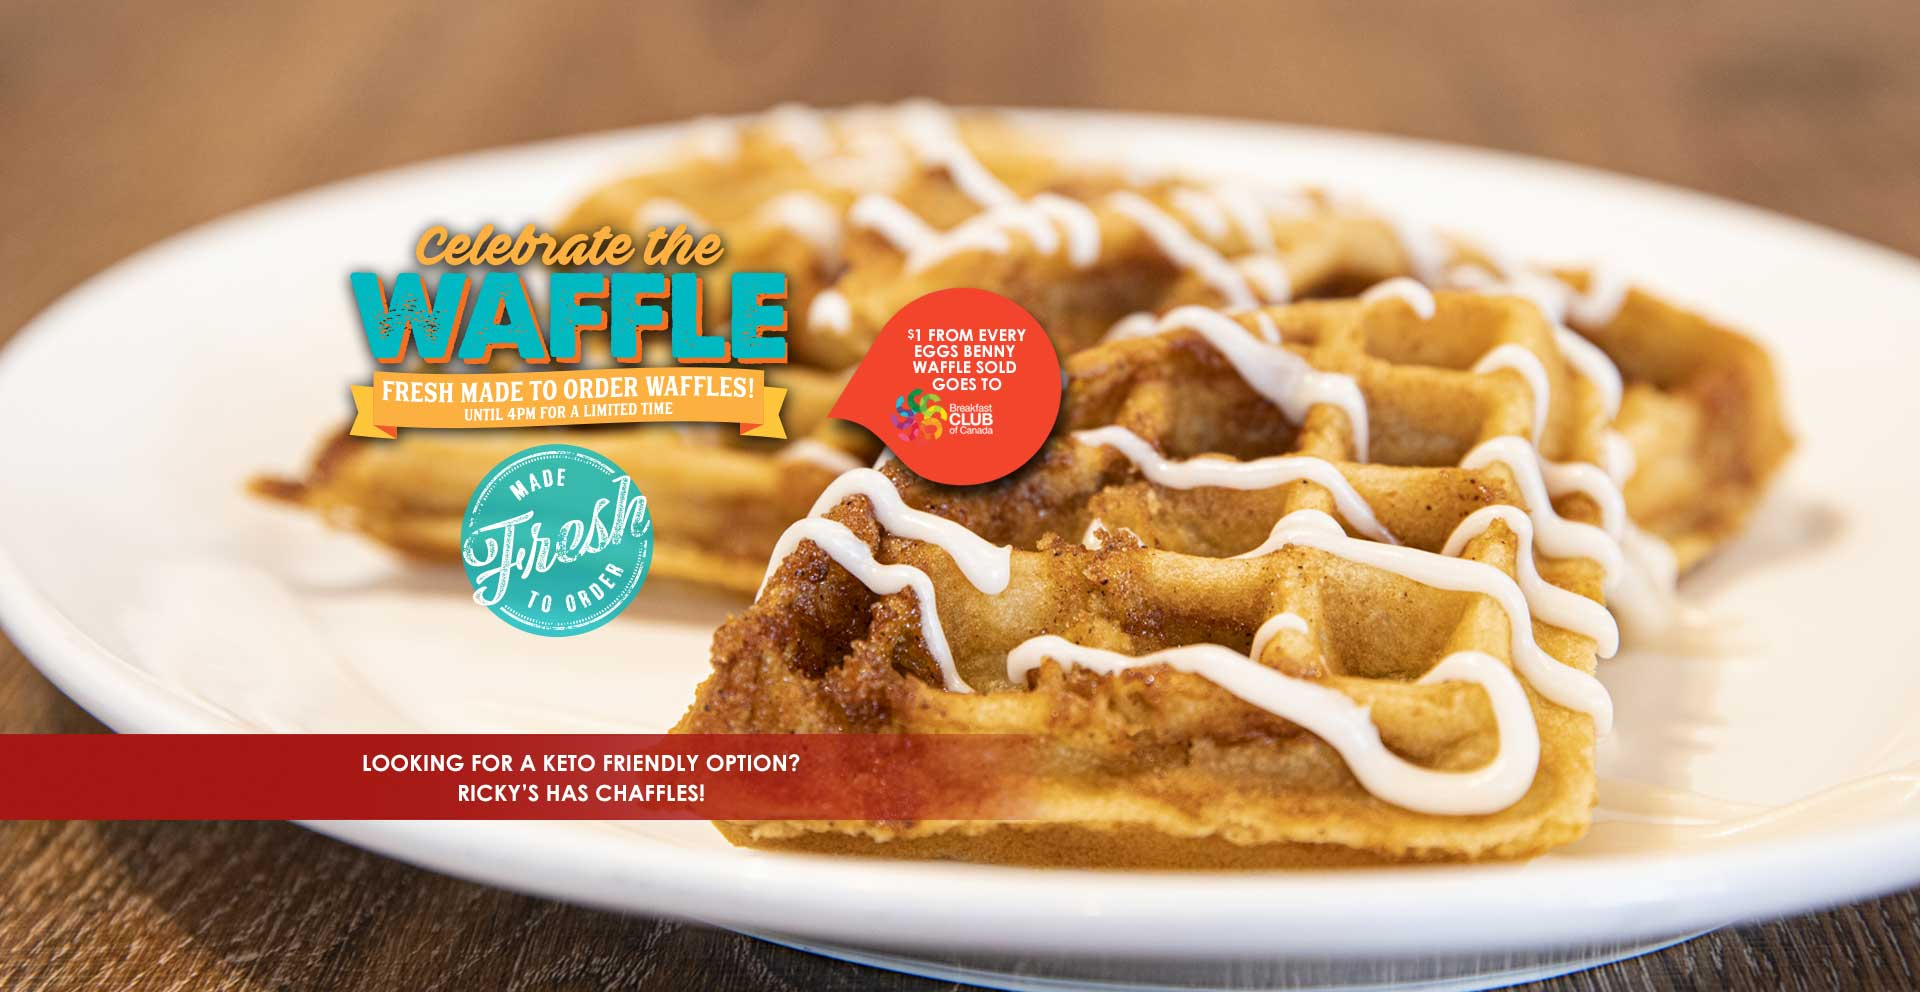 Indulge in the classic goodness of a fresh, made to order Waffle! Choose from sweet like our